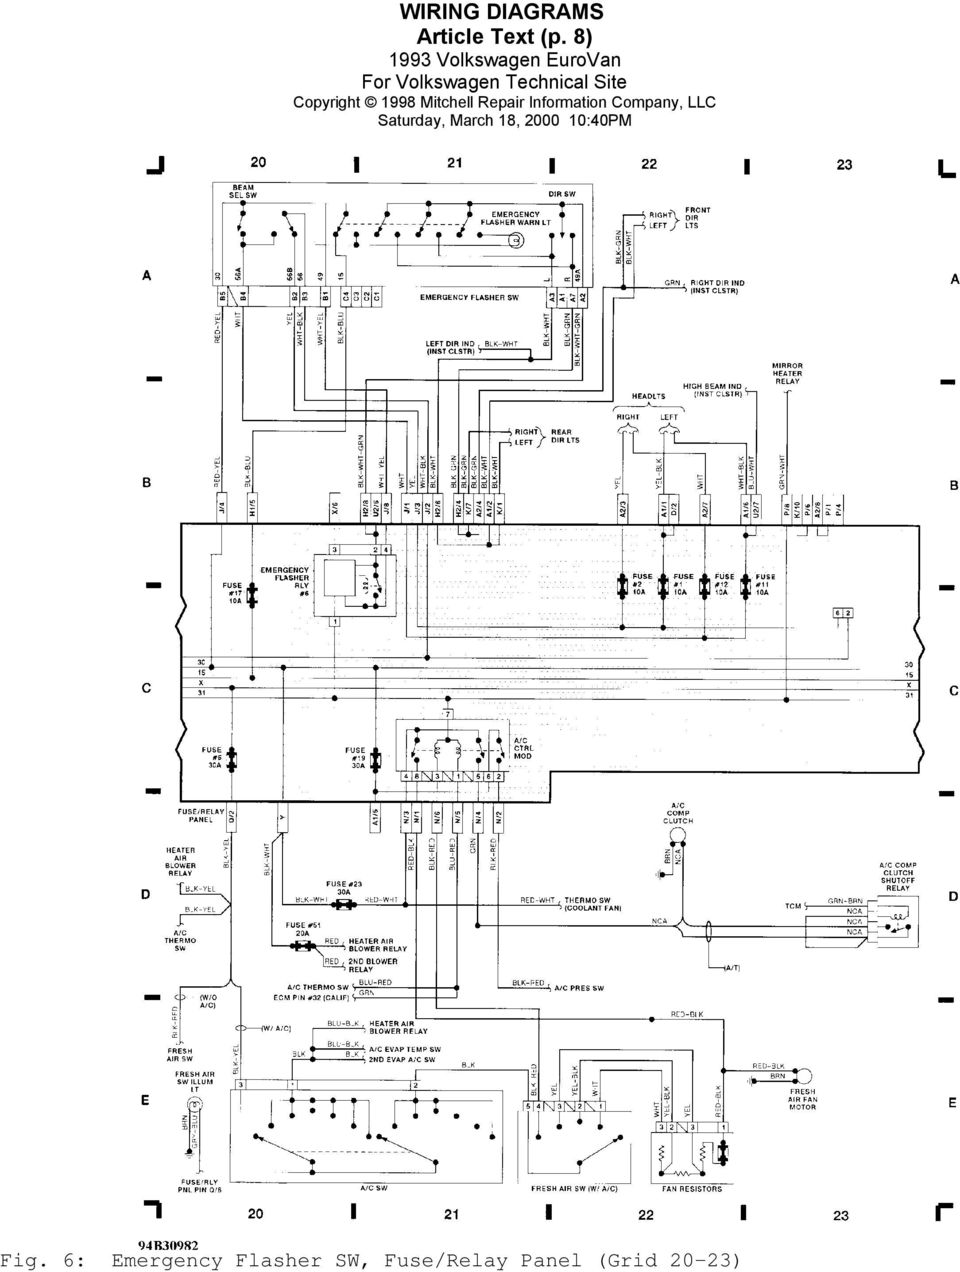 tacho connecting wiring diagram for yamaha r1 04 06